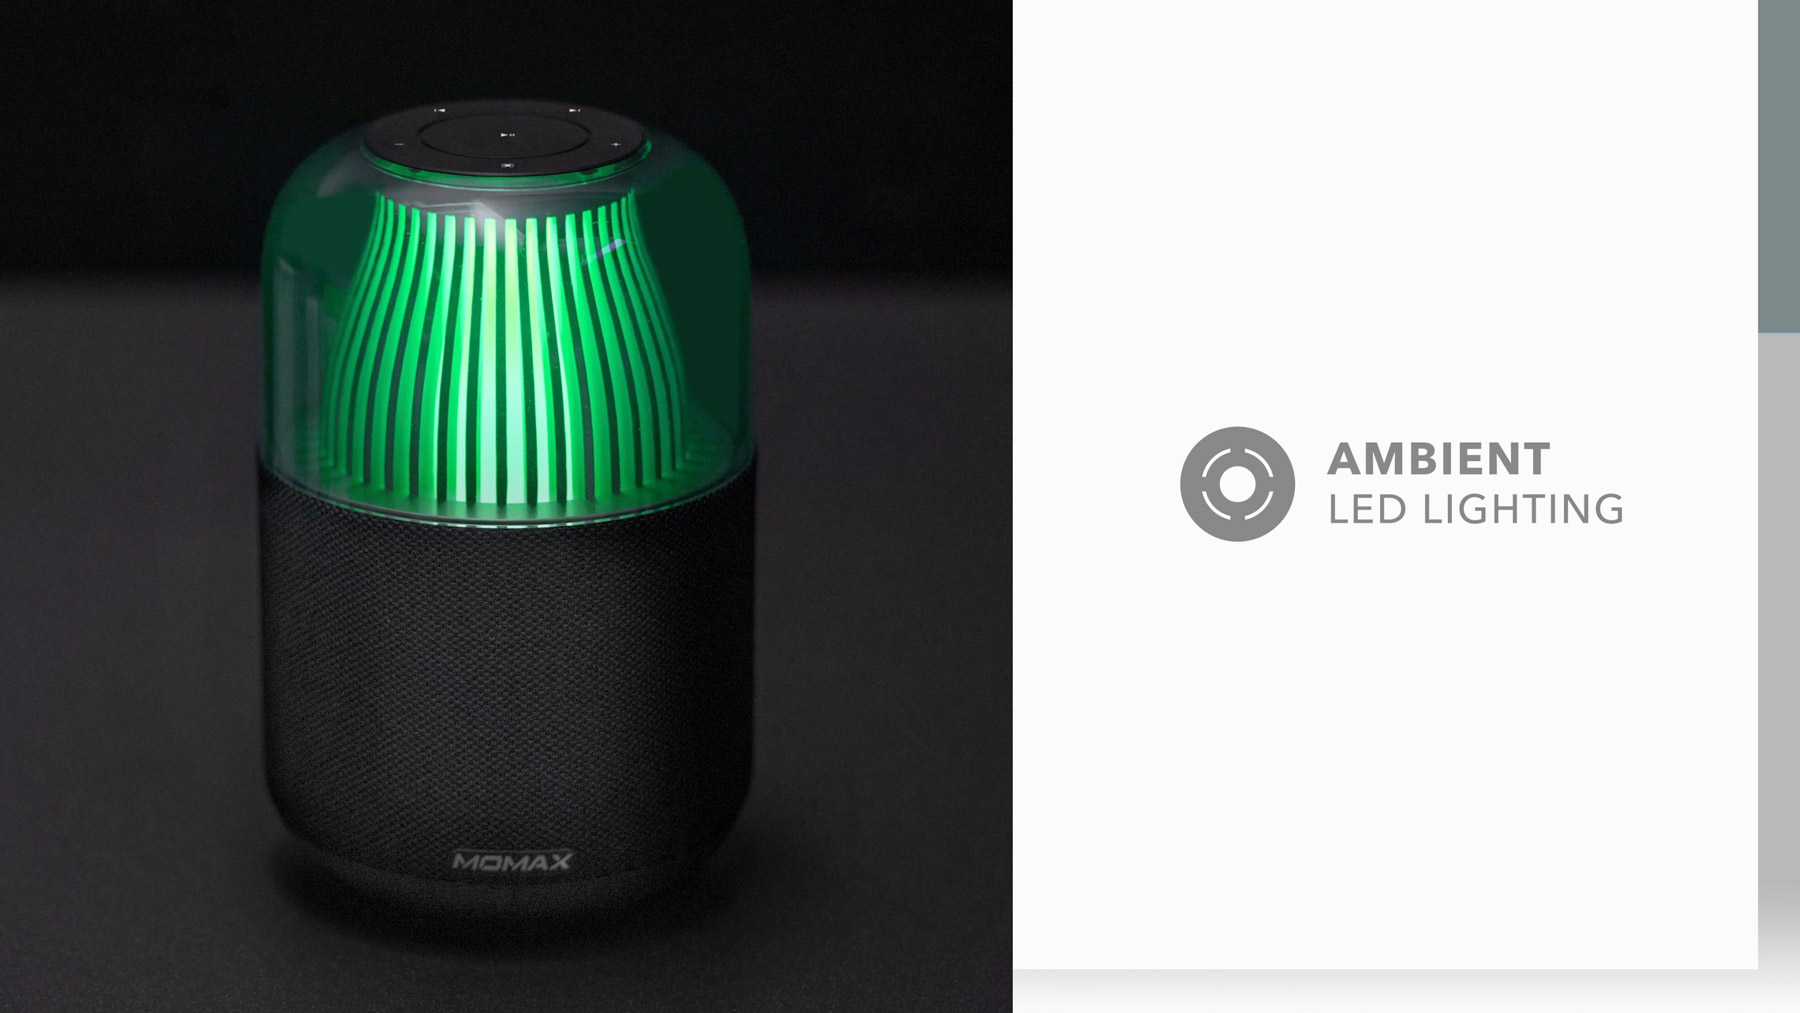 Momax Space Wireless Speaker with Ambient LED lighting